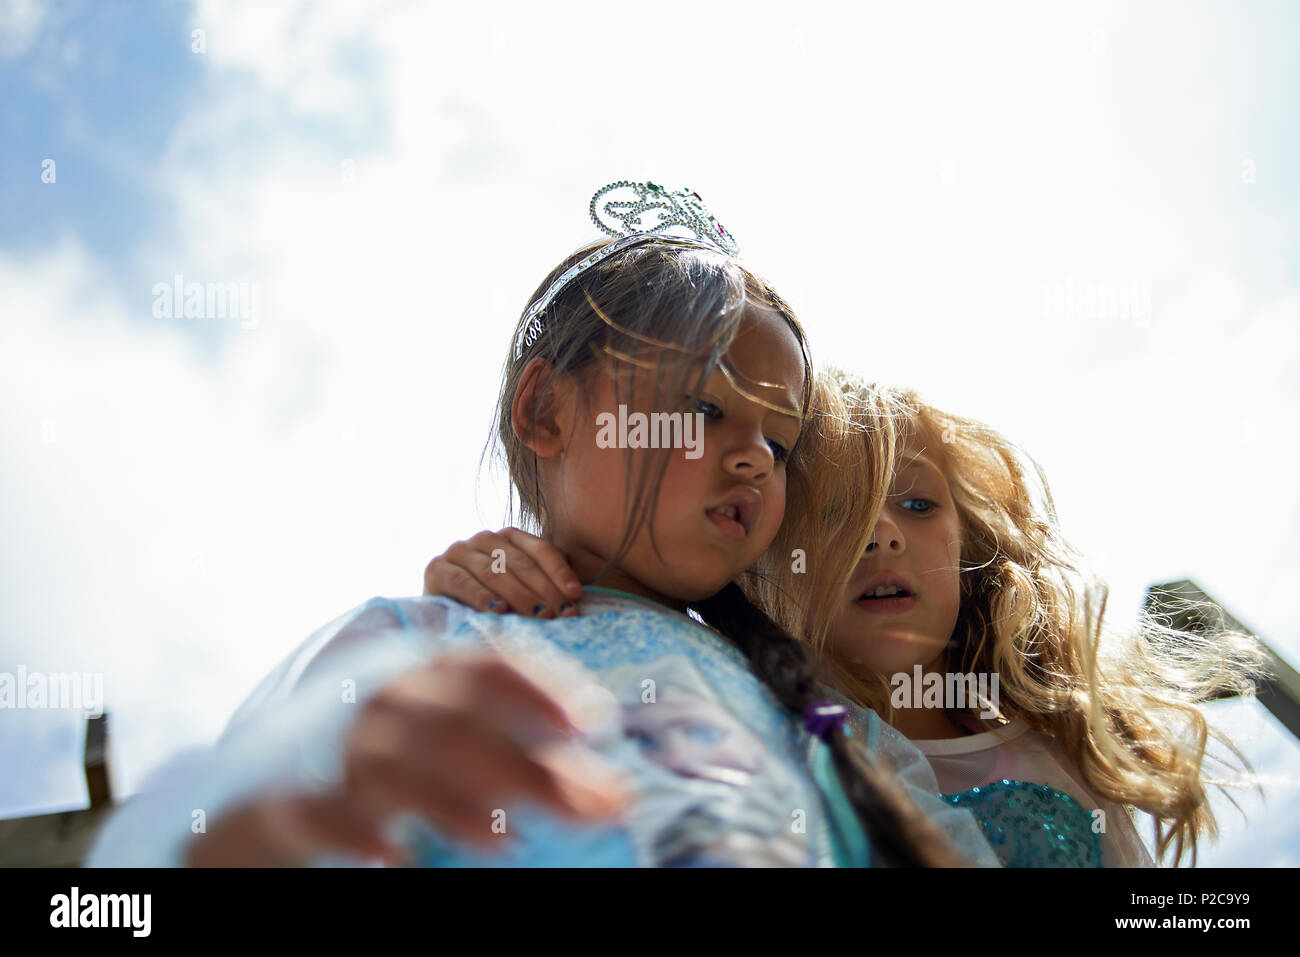 Young Asian girl wearing a princess dress and a tiara celebrating her birthday with her best friend hugging her tight - Stock Image